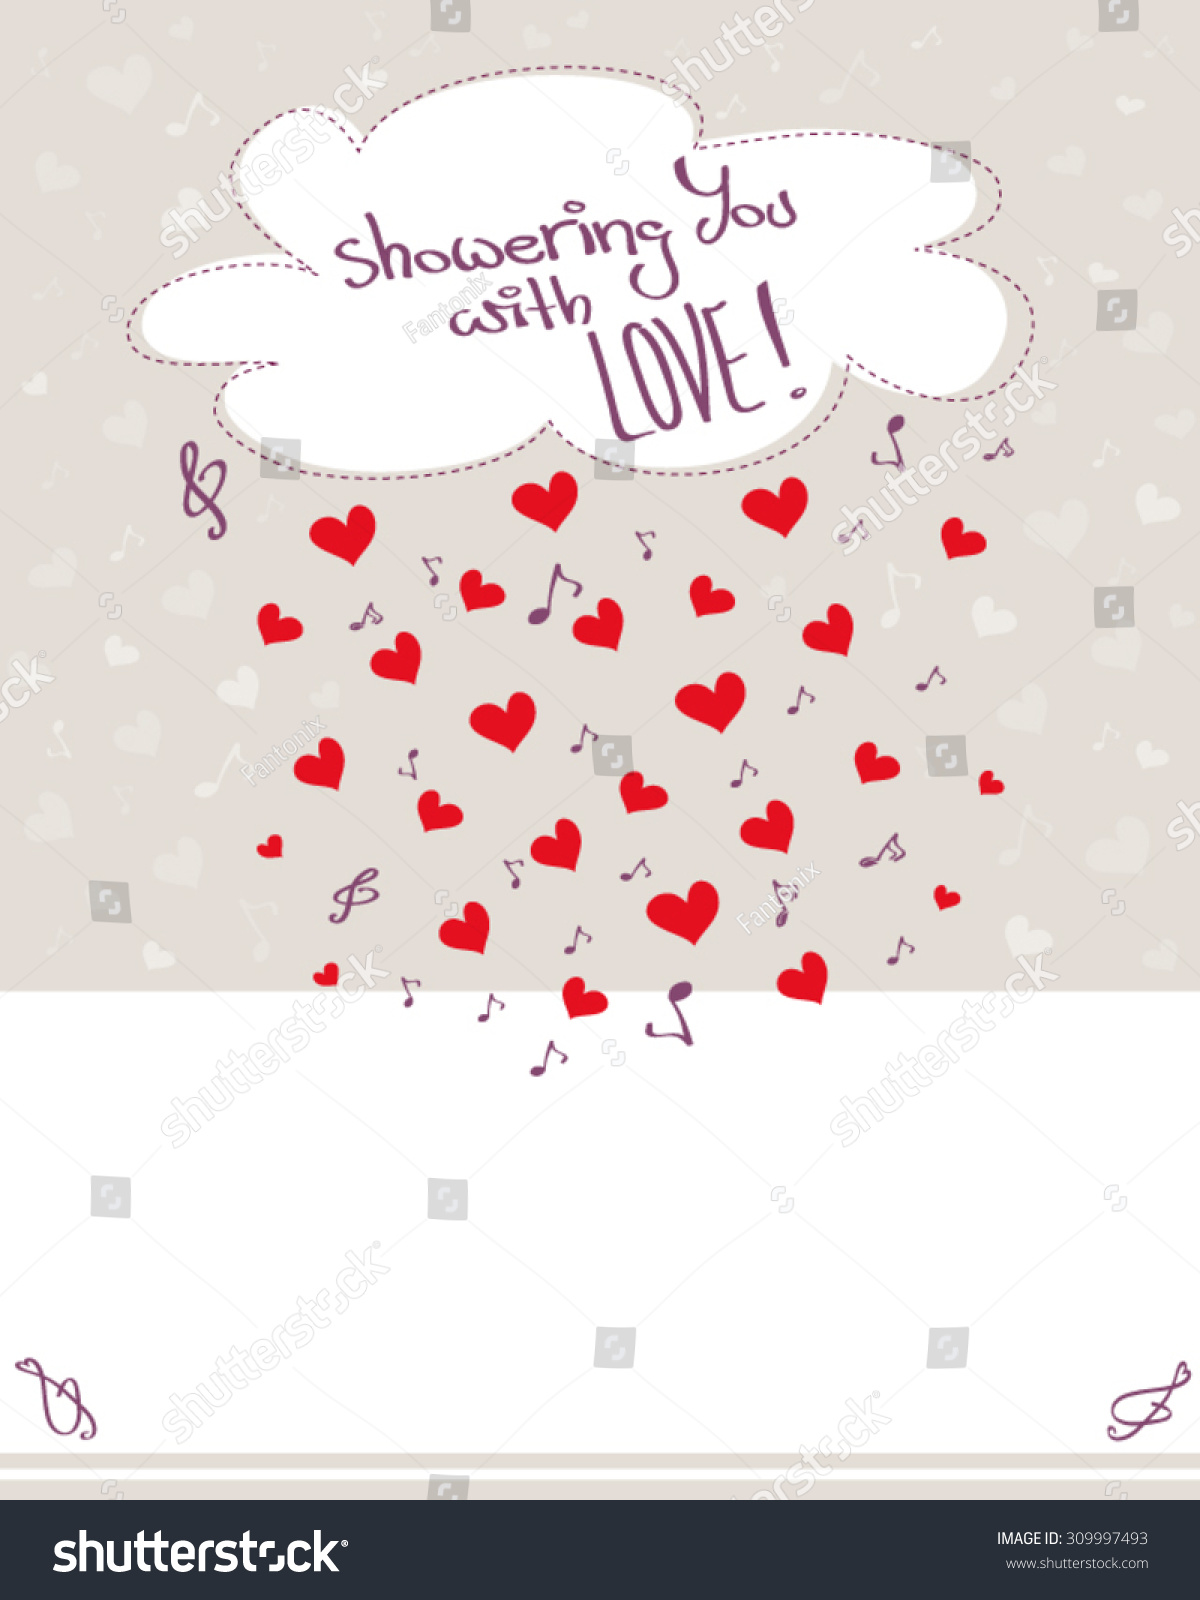 Greeting card raining hearts musical notes stock vector 309997493 greeting card with raining hearts musical notes and cloud pale background with copy space kristyandbryce Choice Image